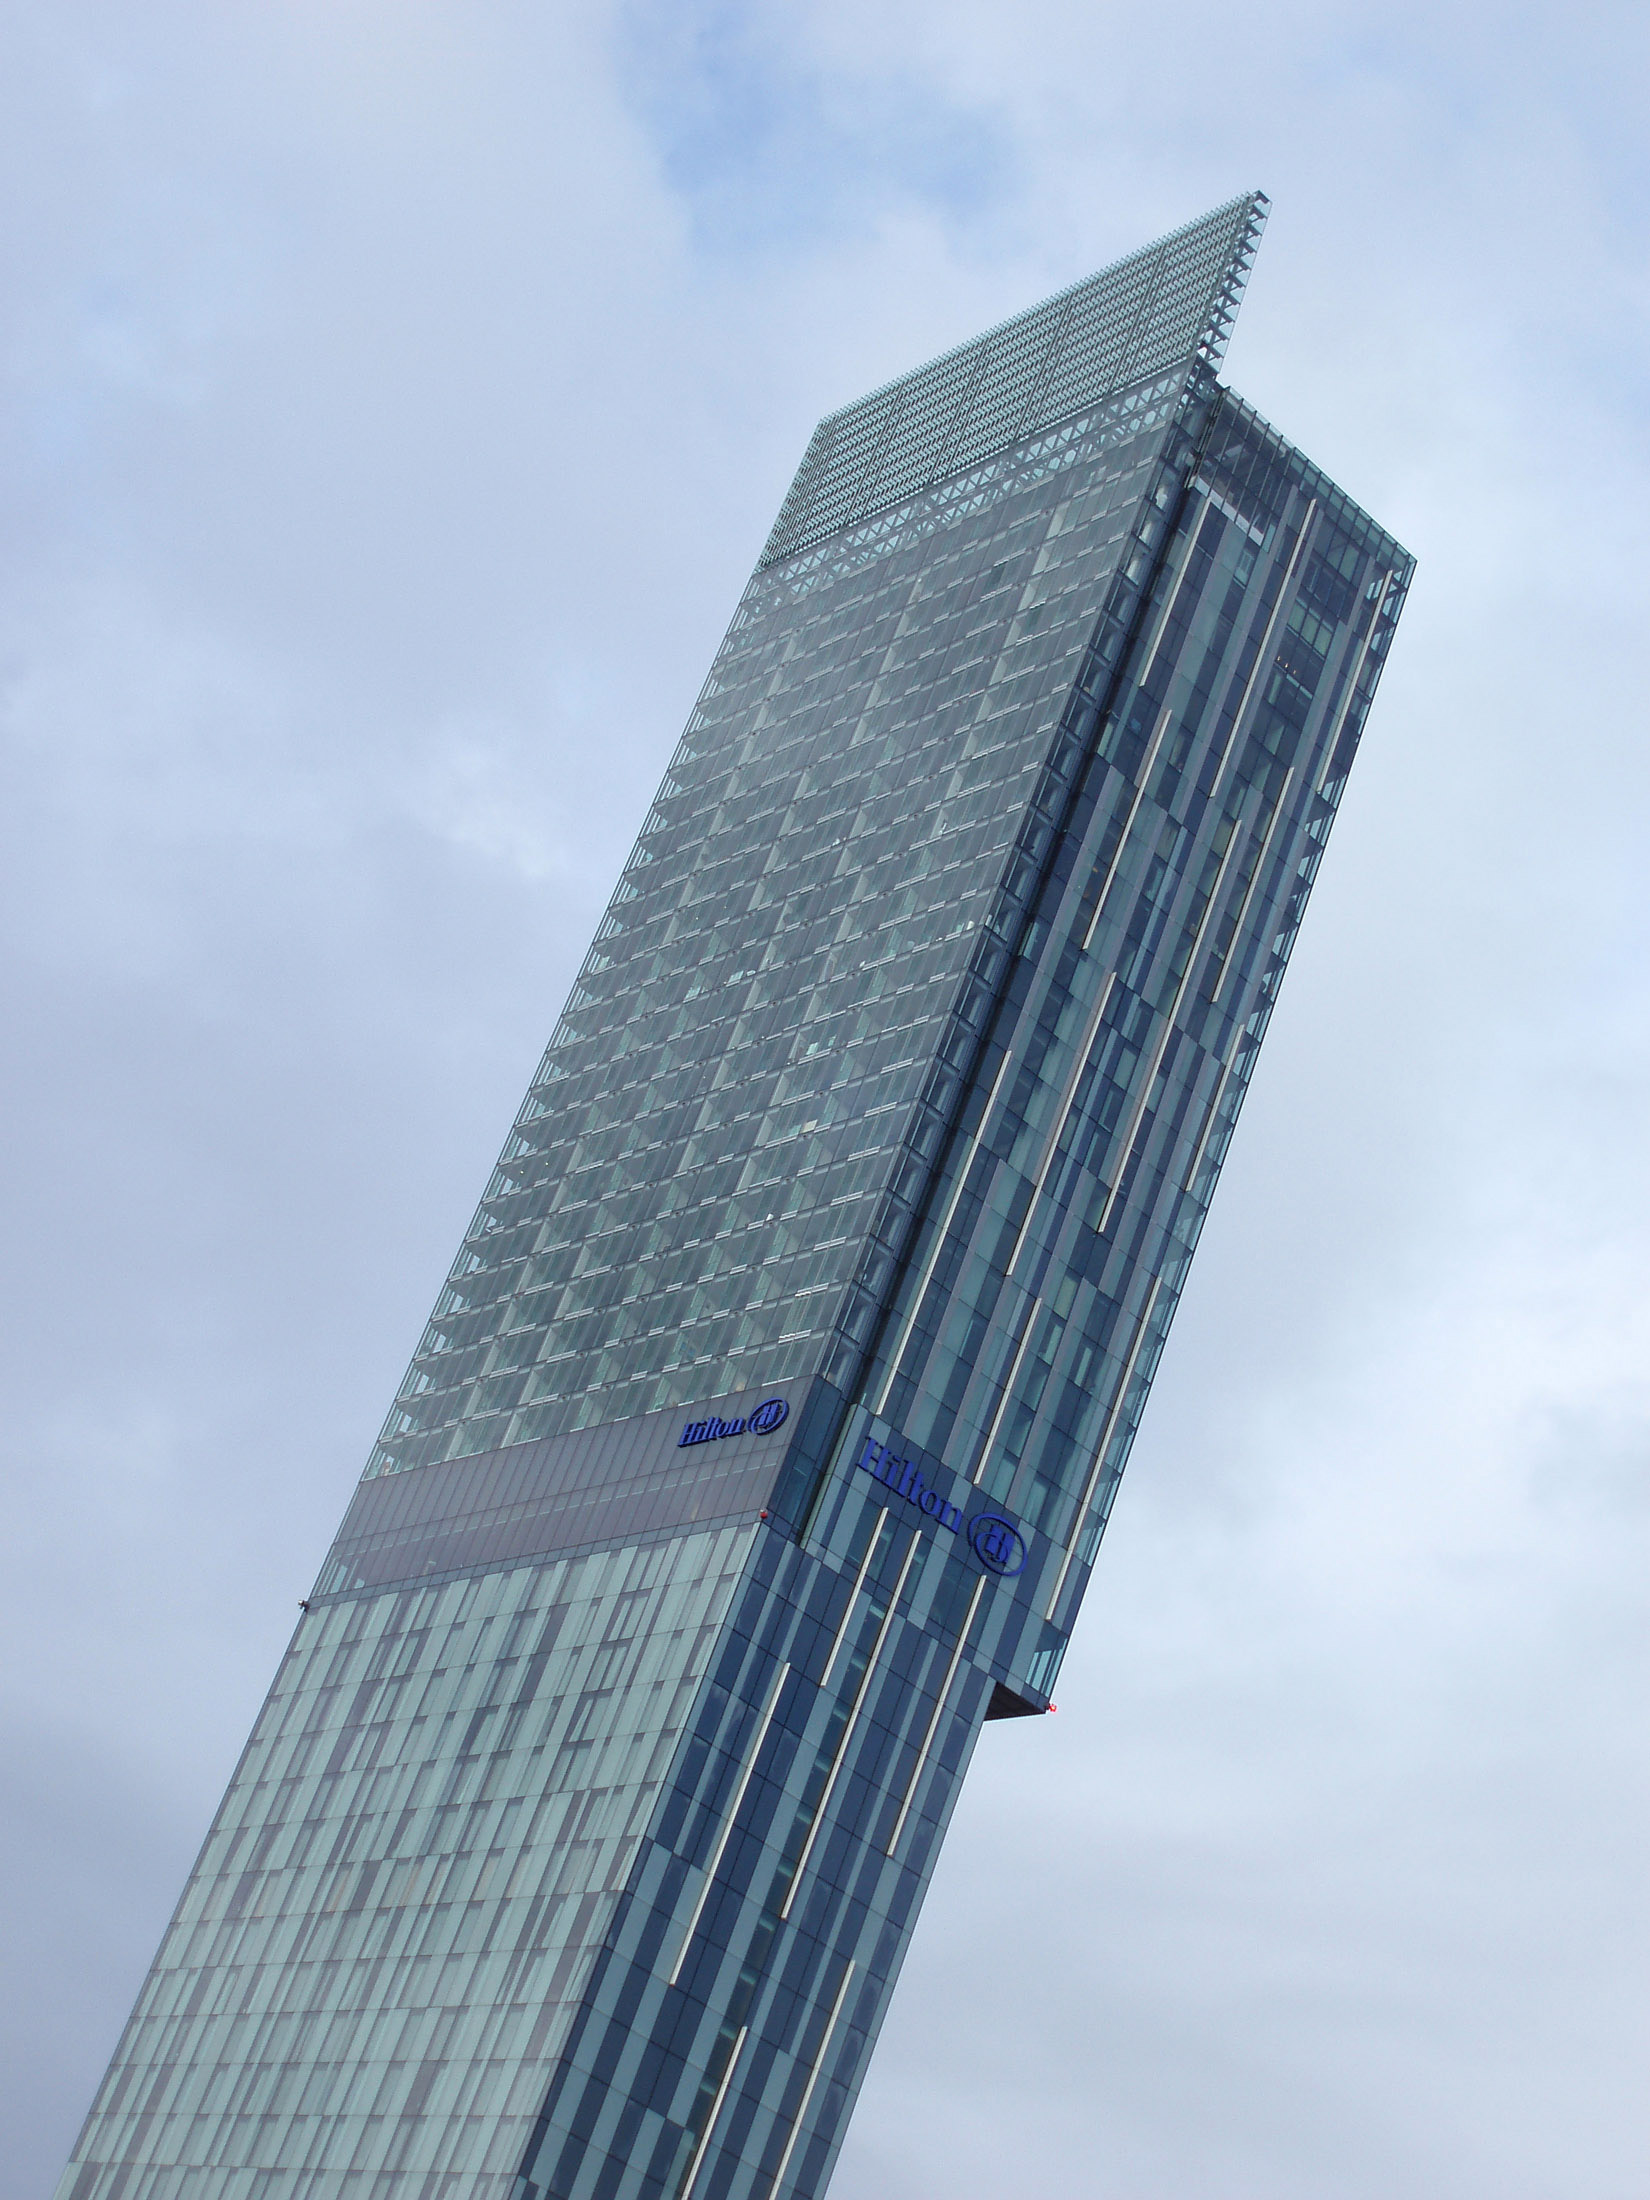 Famous Architectural Tall Beetham Tower Building in Manchester on a Cloudy Sky Background.